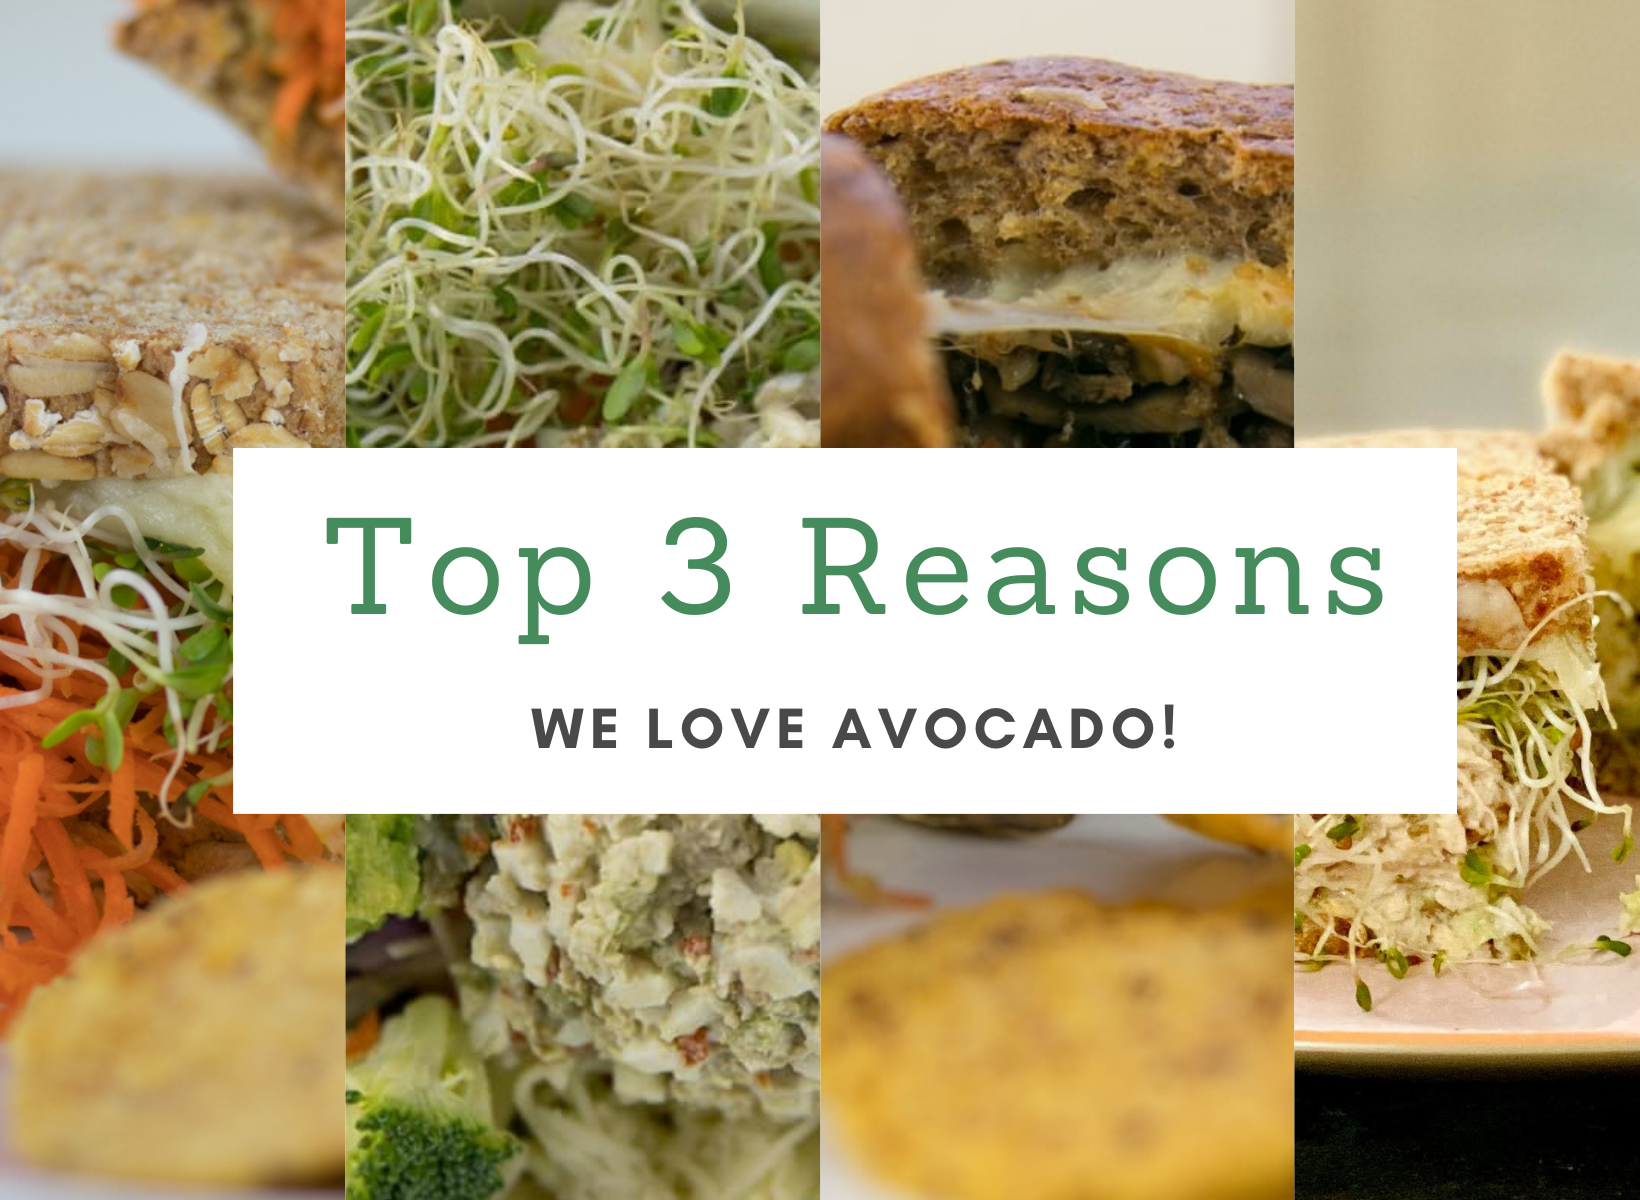 Top 3 reasons we love avocado